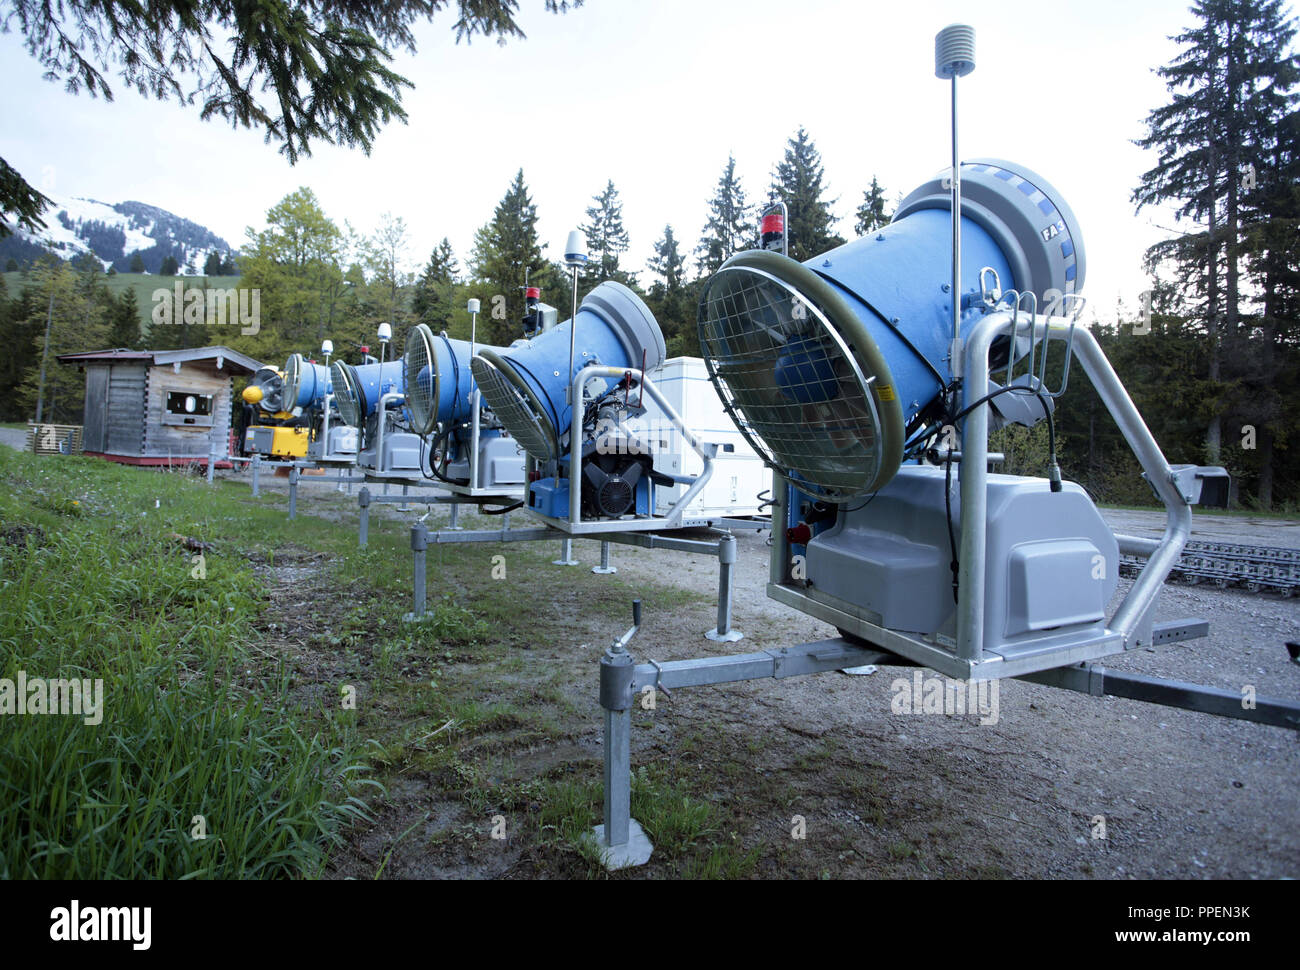 Depot for snow cannons for the ski resort on the Upper Bavarian Sudelfeld. - Stock Image